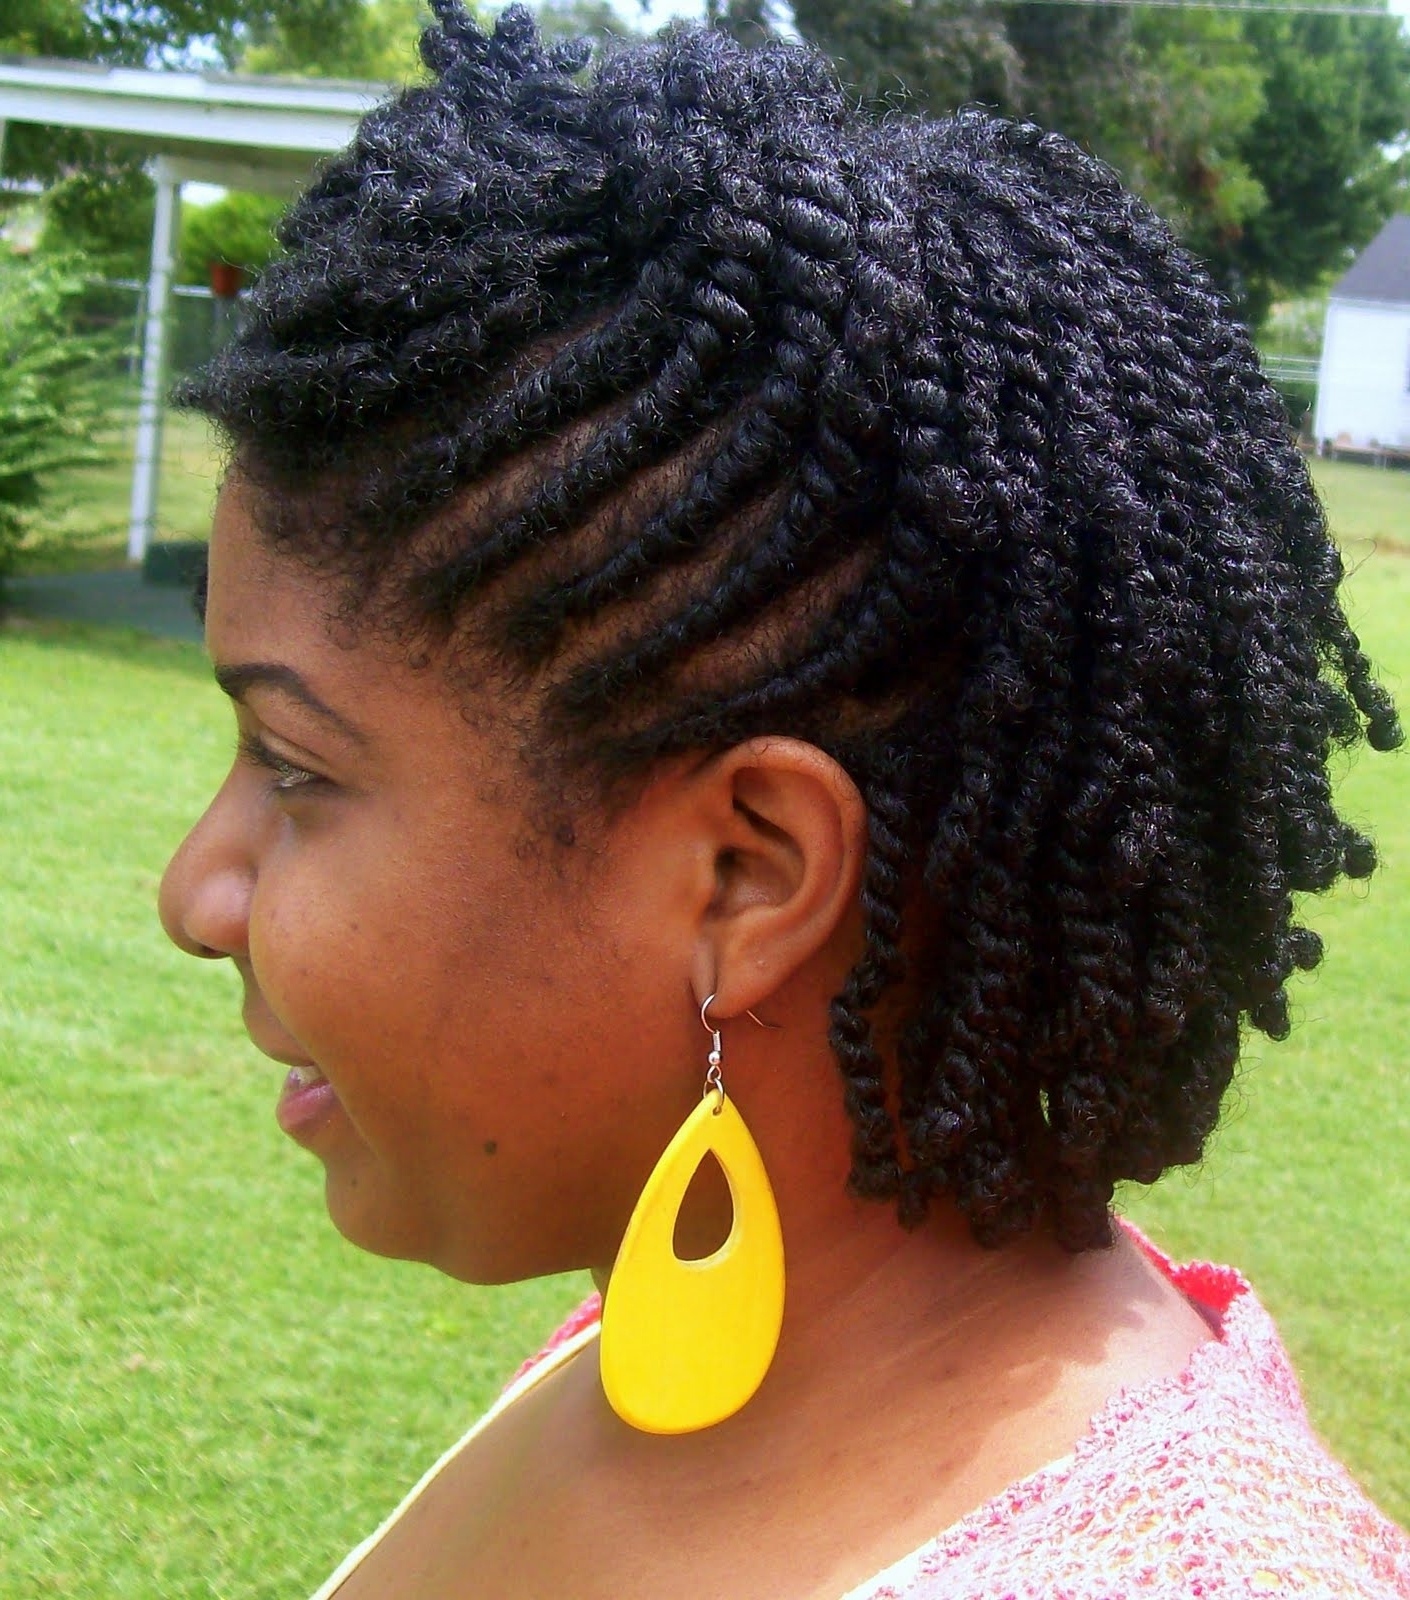 Most Popular Braided Updo Hairstyles For Short Natural Hair Pertaining To Inspiration Natural Hair Braided Hairstyles With Natural Hairstyles (View 11 of 15)